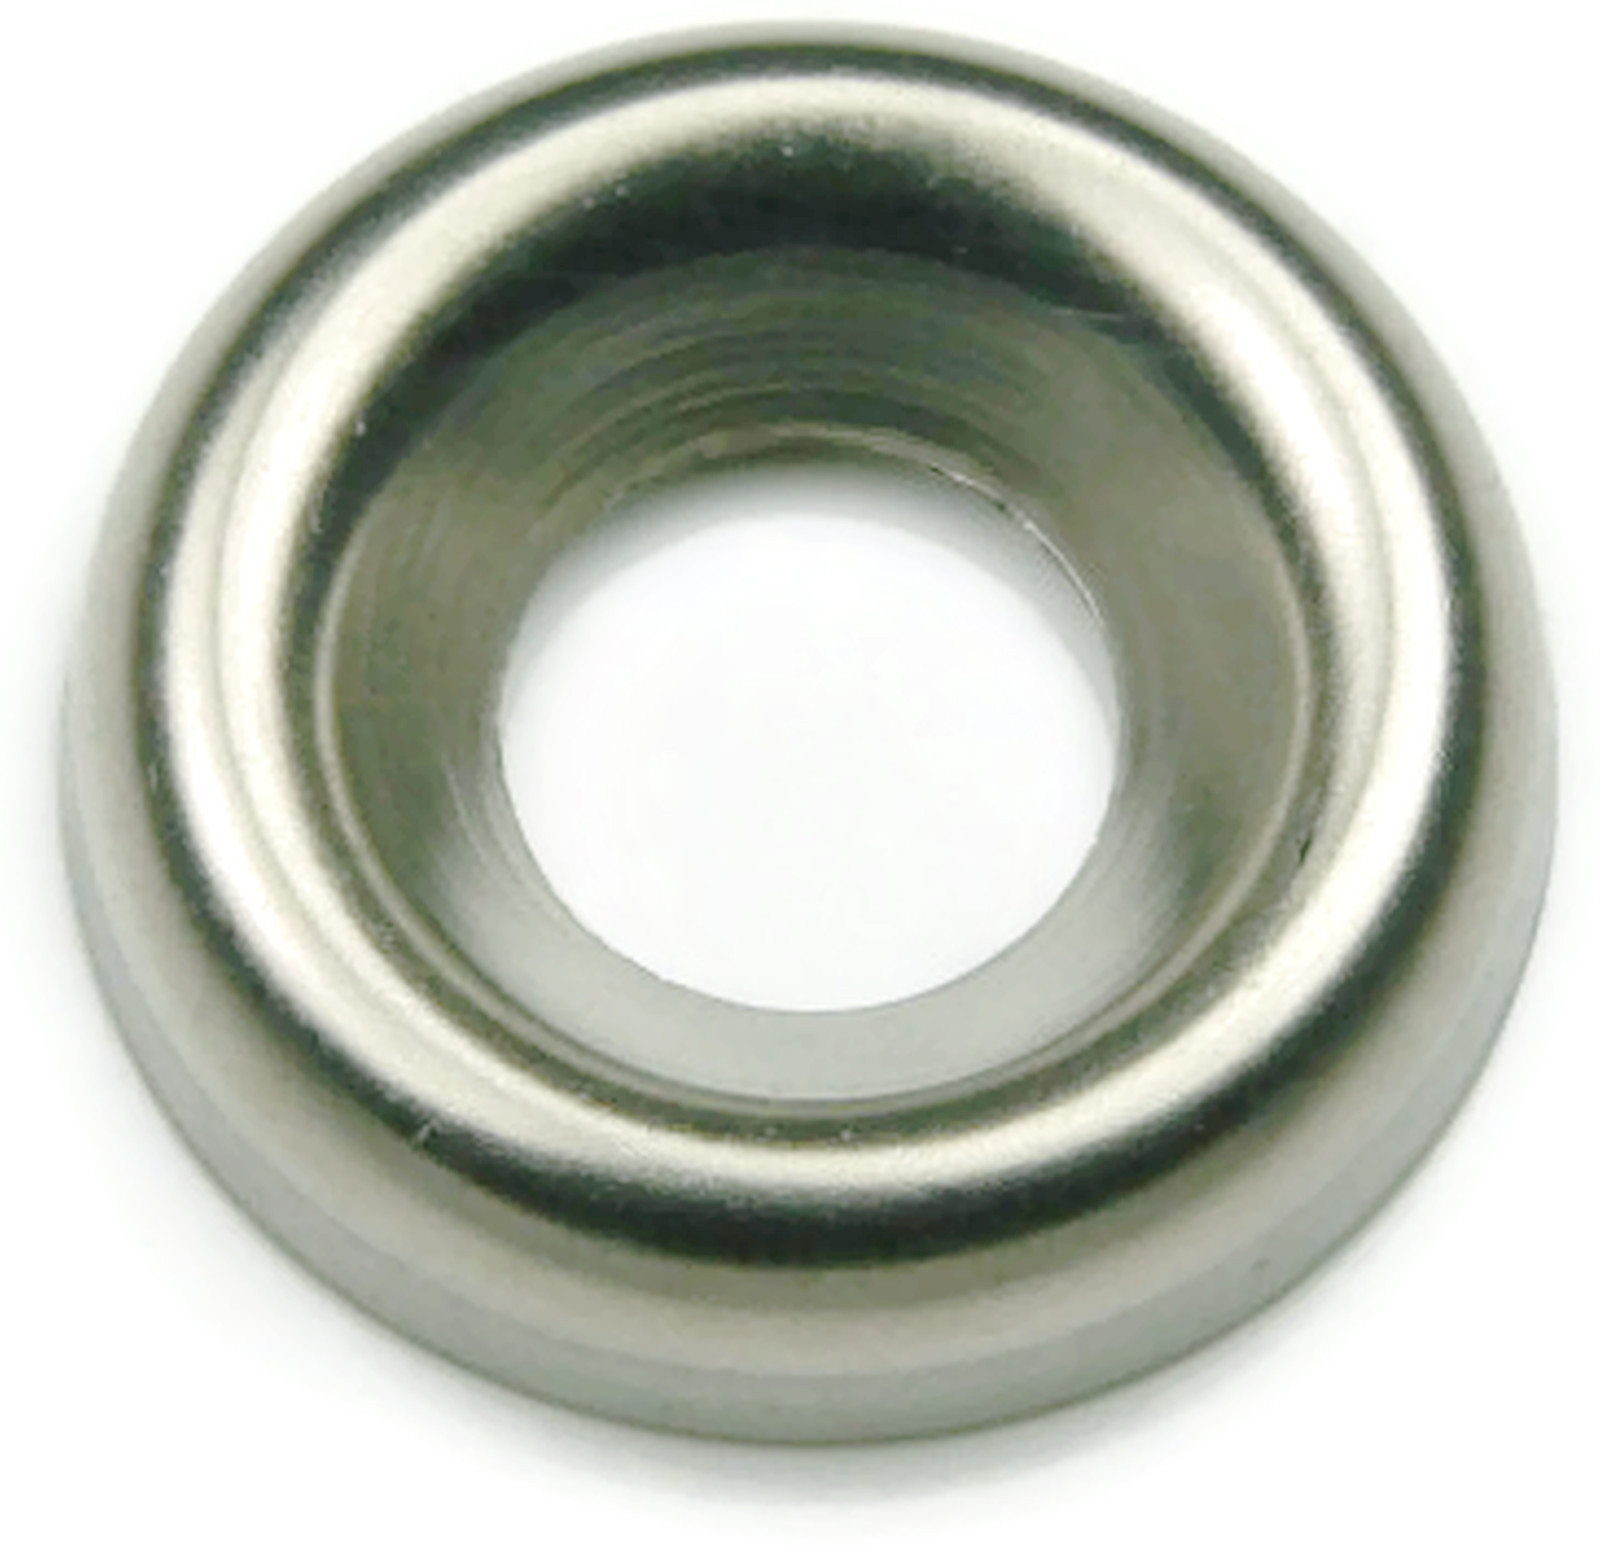 #10 Qty-250 Finishing Cup Washer 410 Stainless Steel